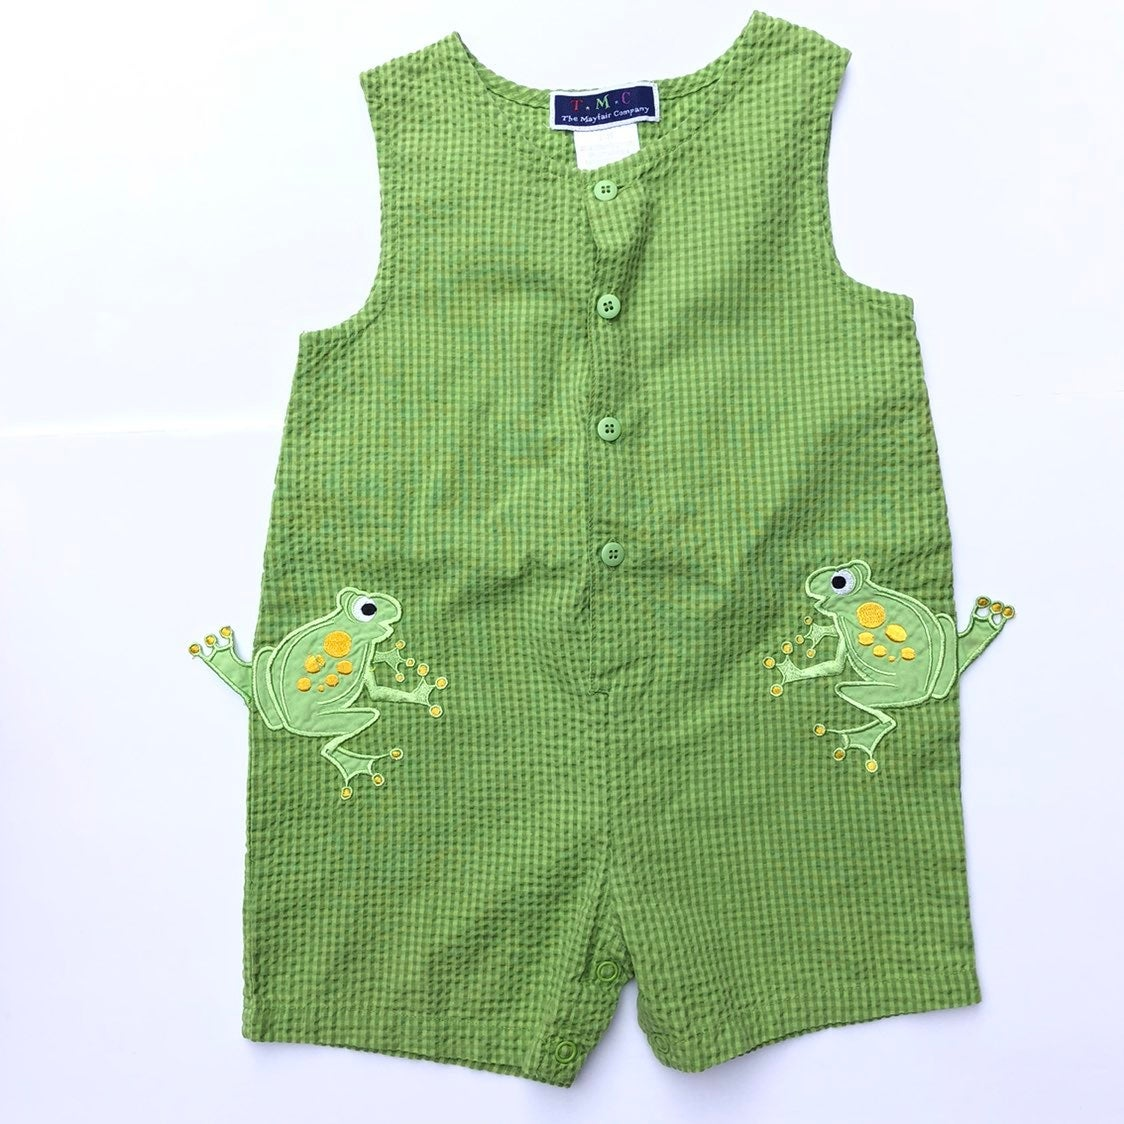 Boys Frog Jumper Outfit 2T Green